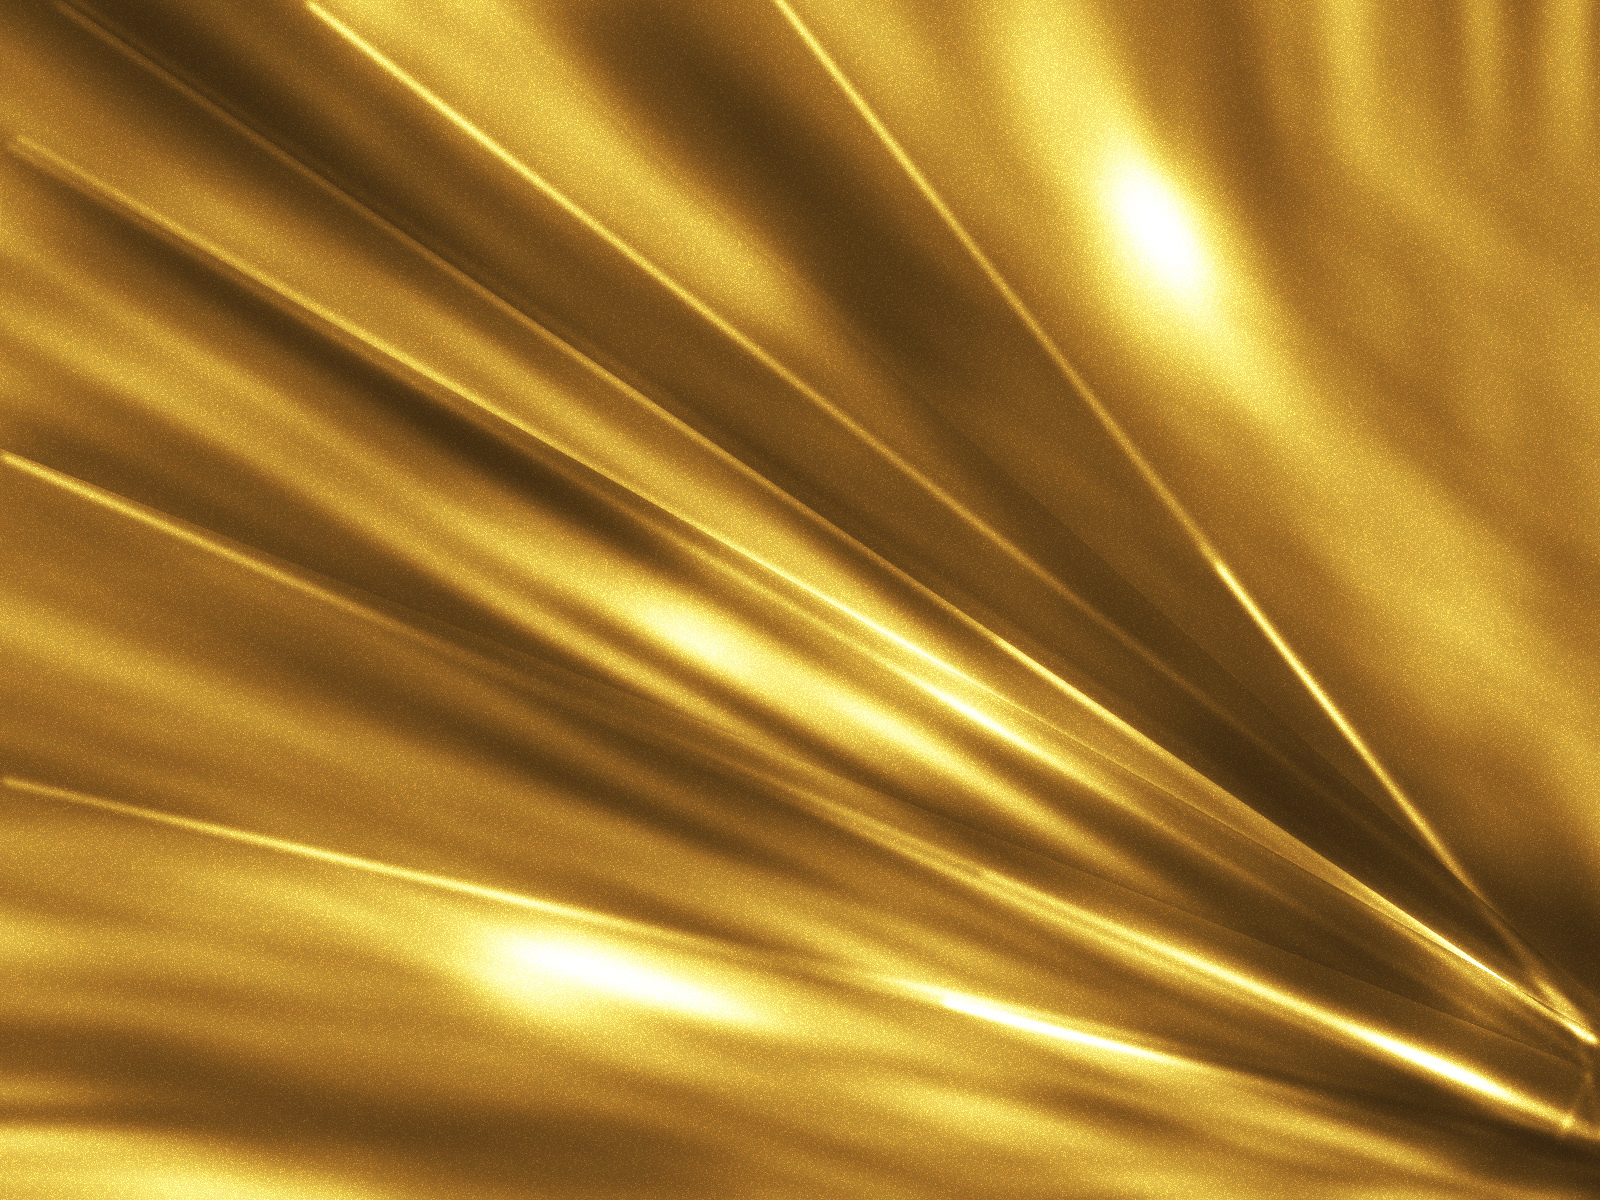 Shiny Gold Background   wallpaper 1600x1200